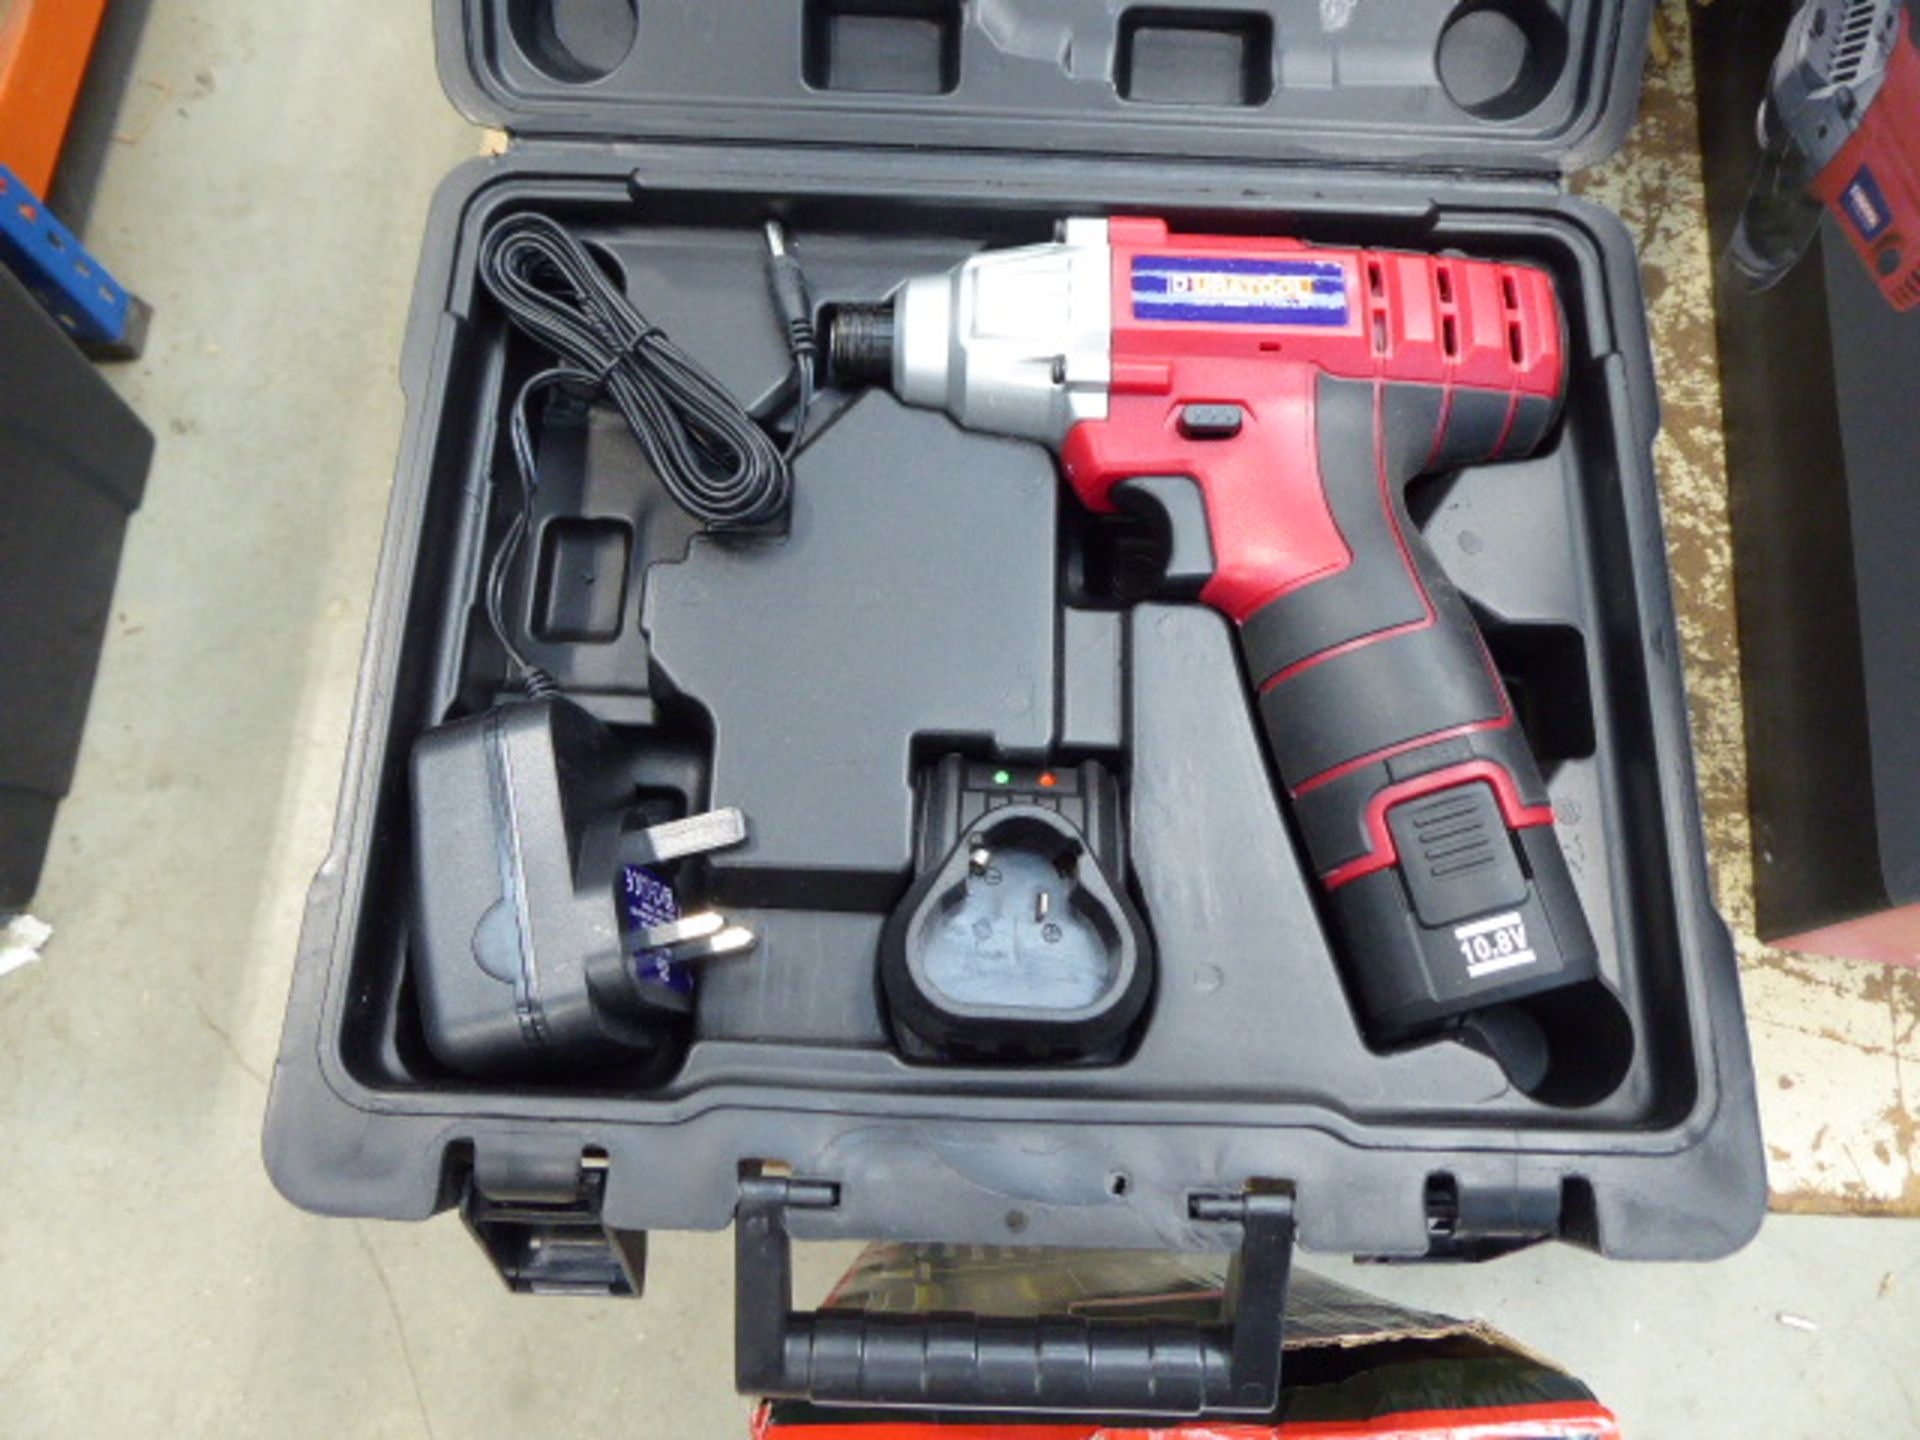 10.8v impact drill with one battery and charger